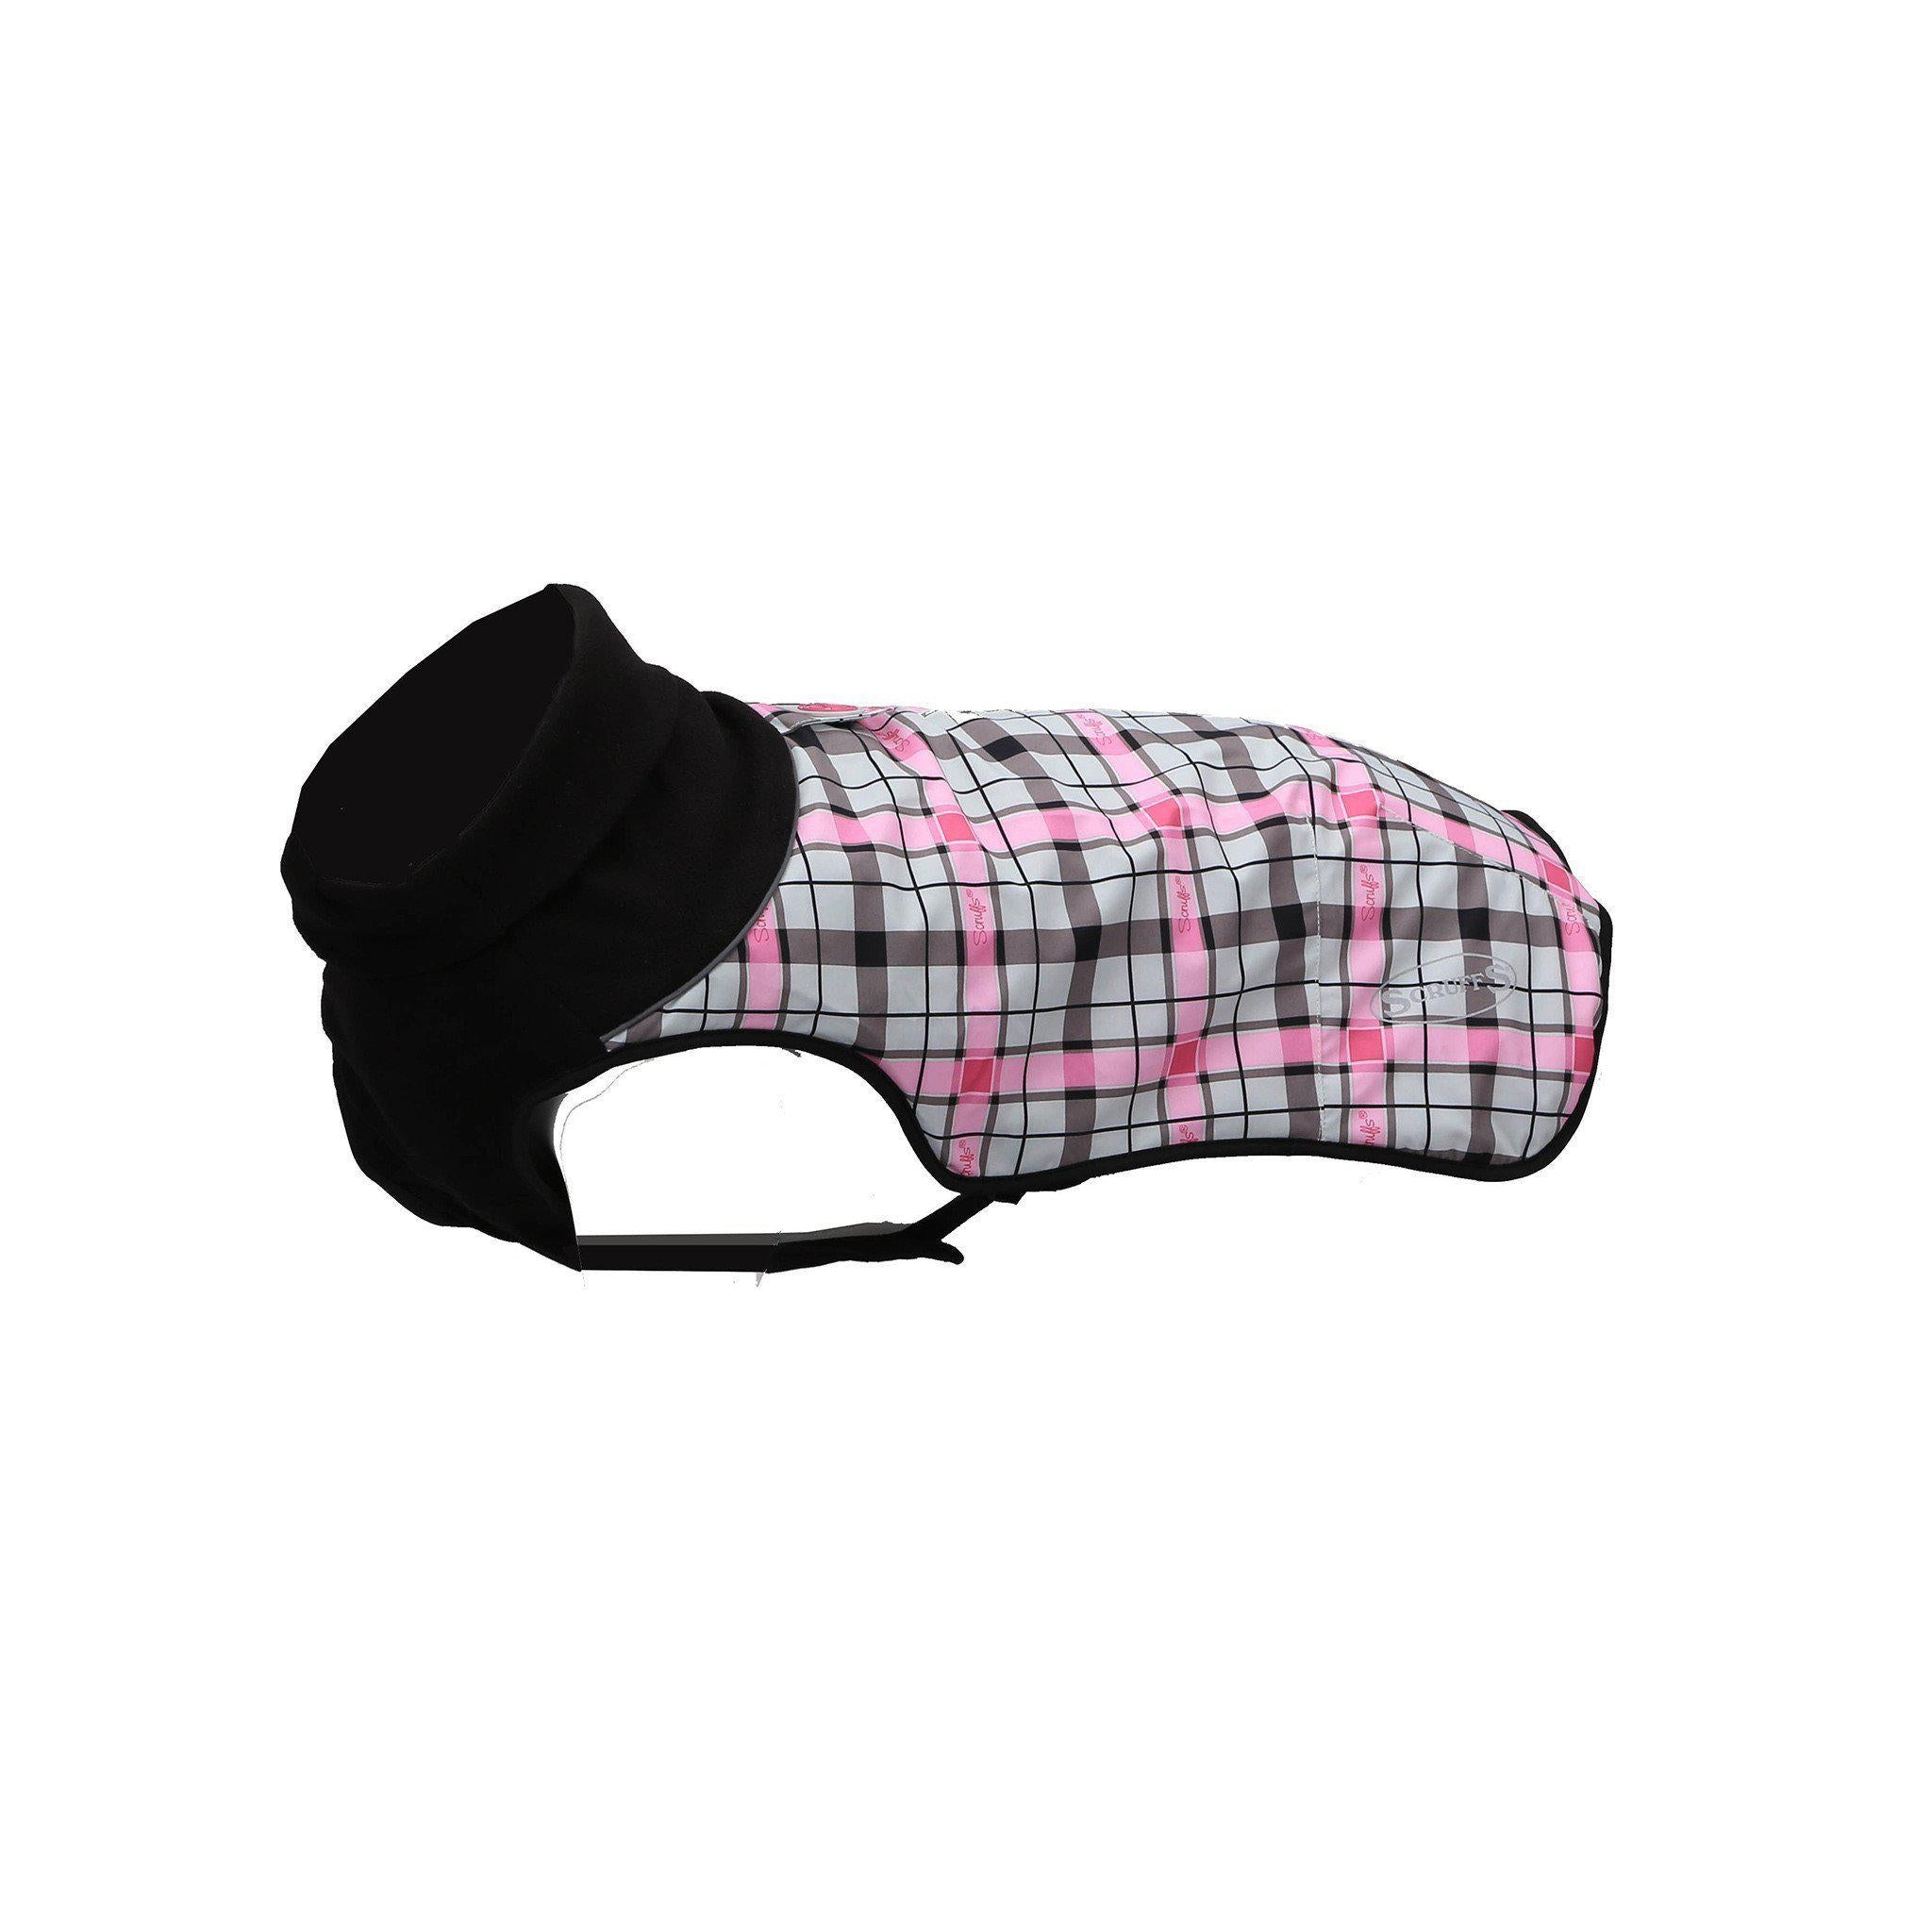 Scruffs Thermal Dog Coat - Calamity Jane - comfypet